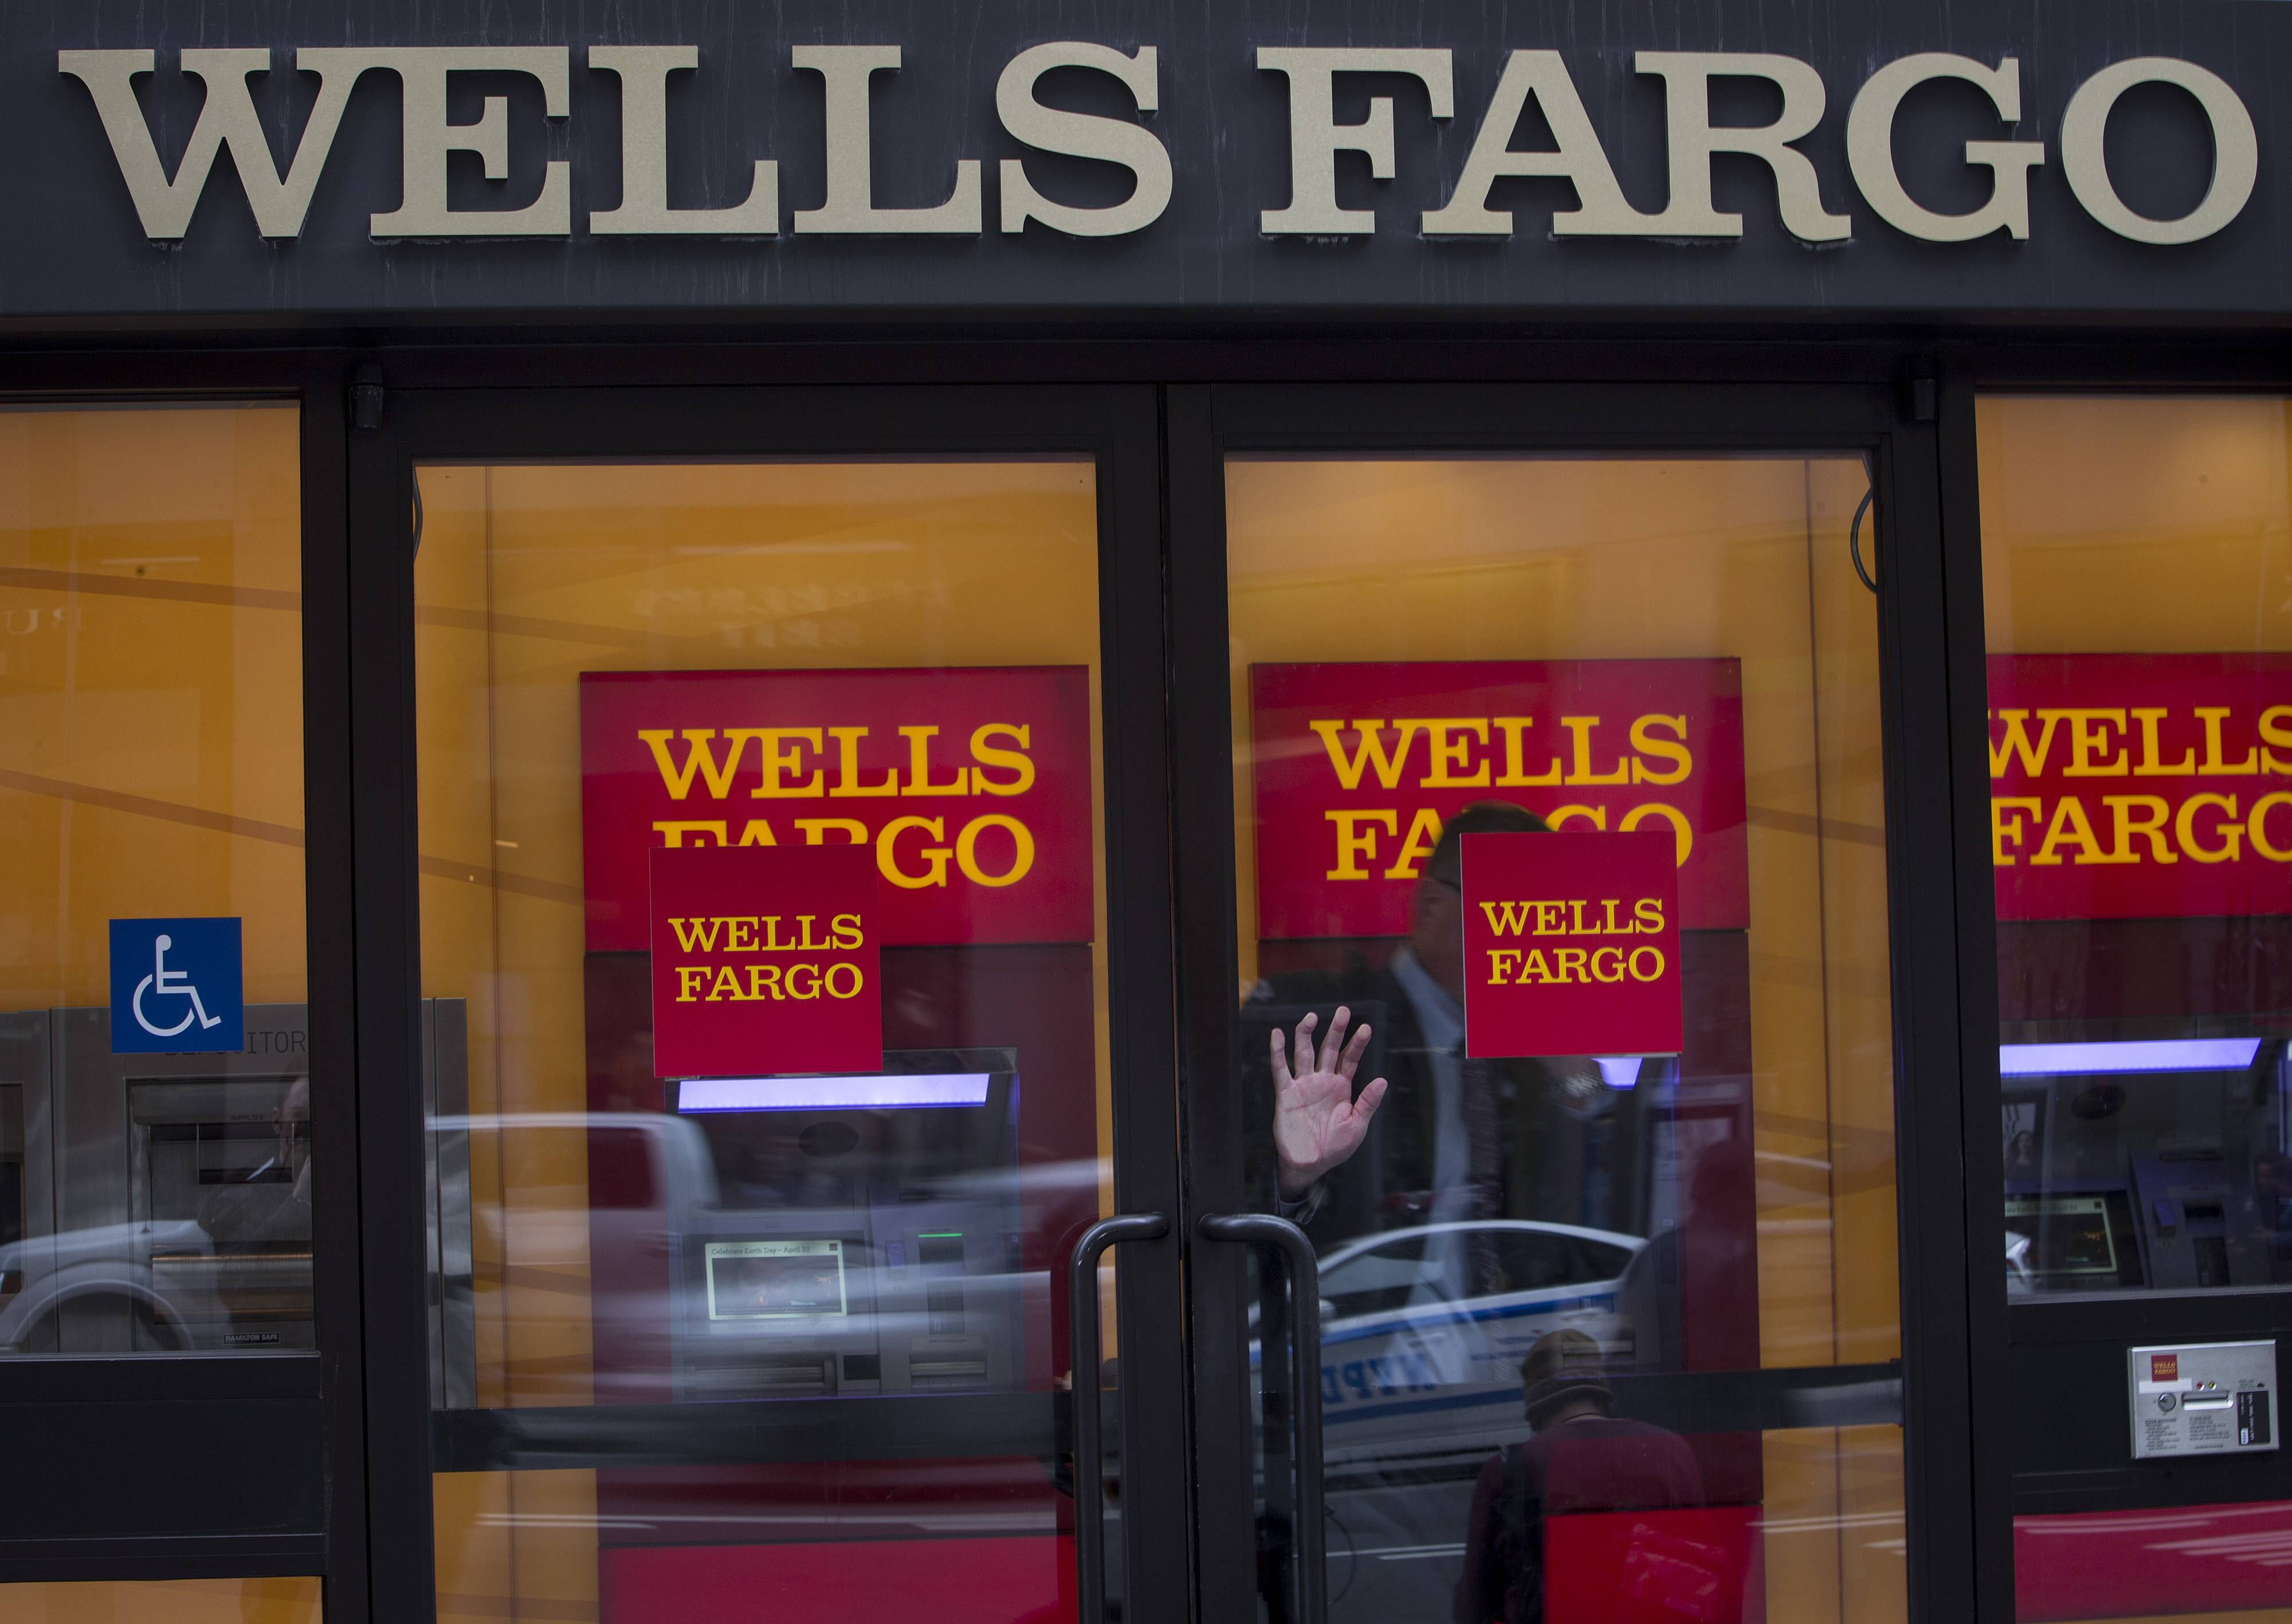 Wells Fargo CEO John Stumpf received base pay of $2.8 million, stock awards of $12.5 million, and incentive pay of $4 million,